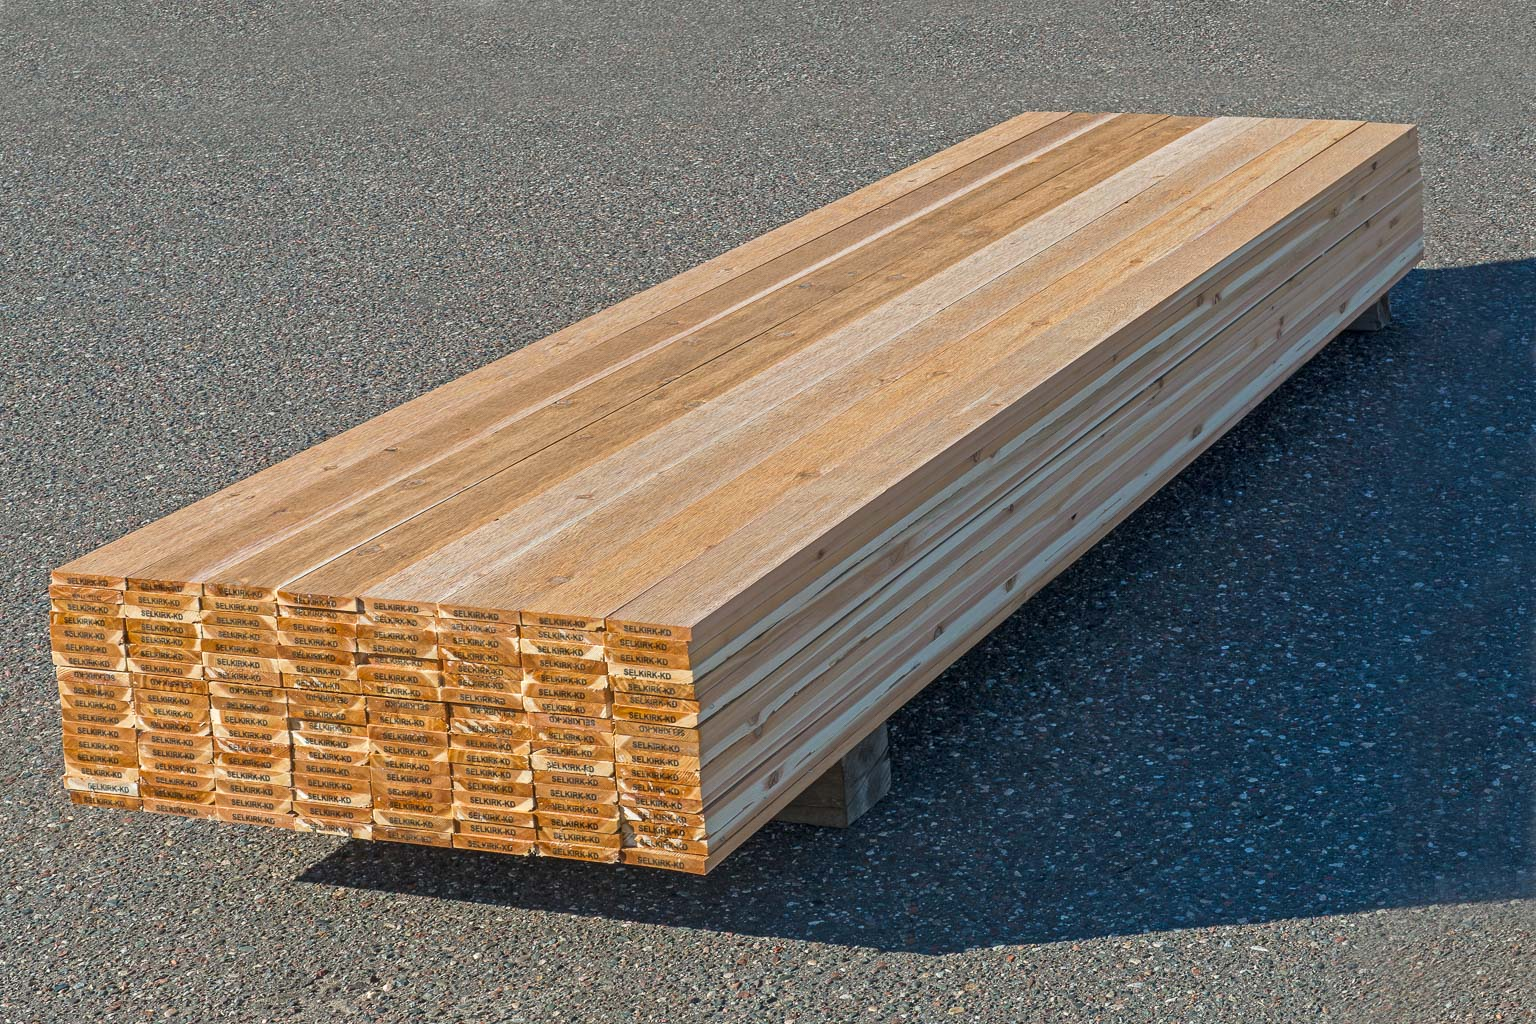 1x6 kd selkirk brand s1s2e midwest lumber